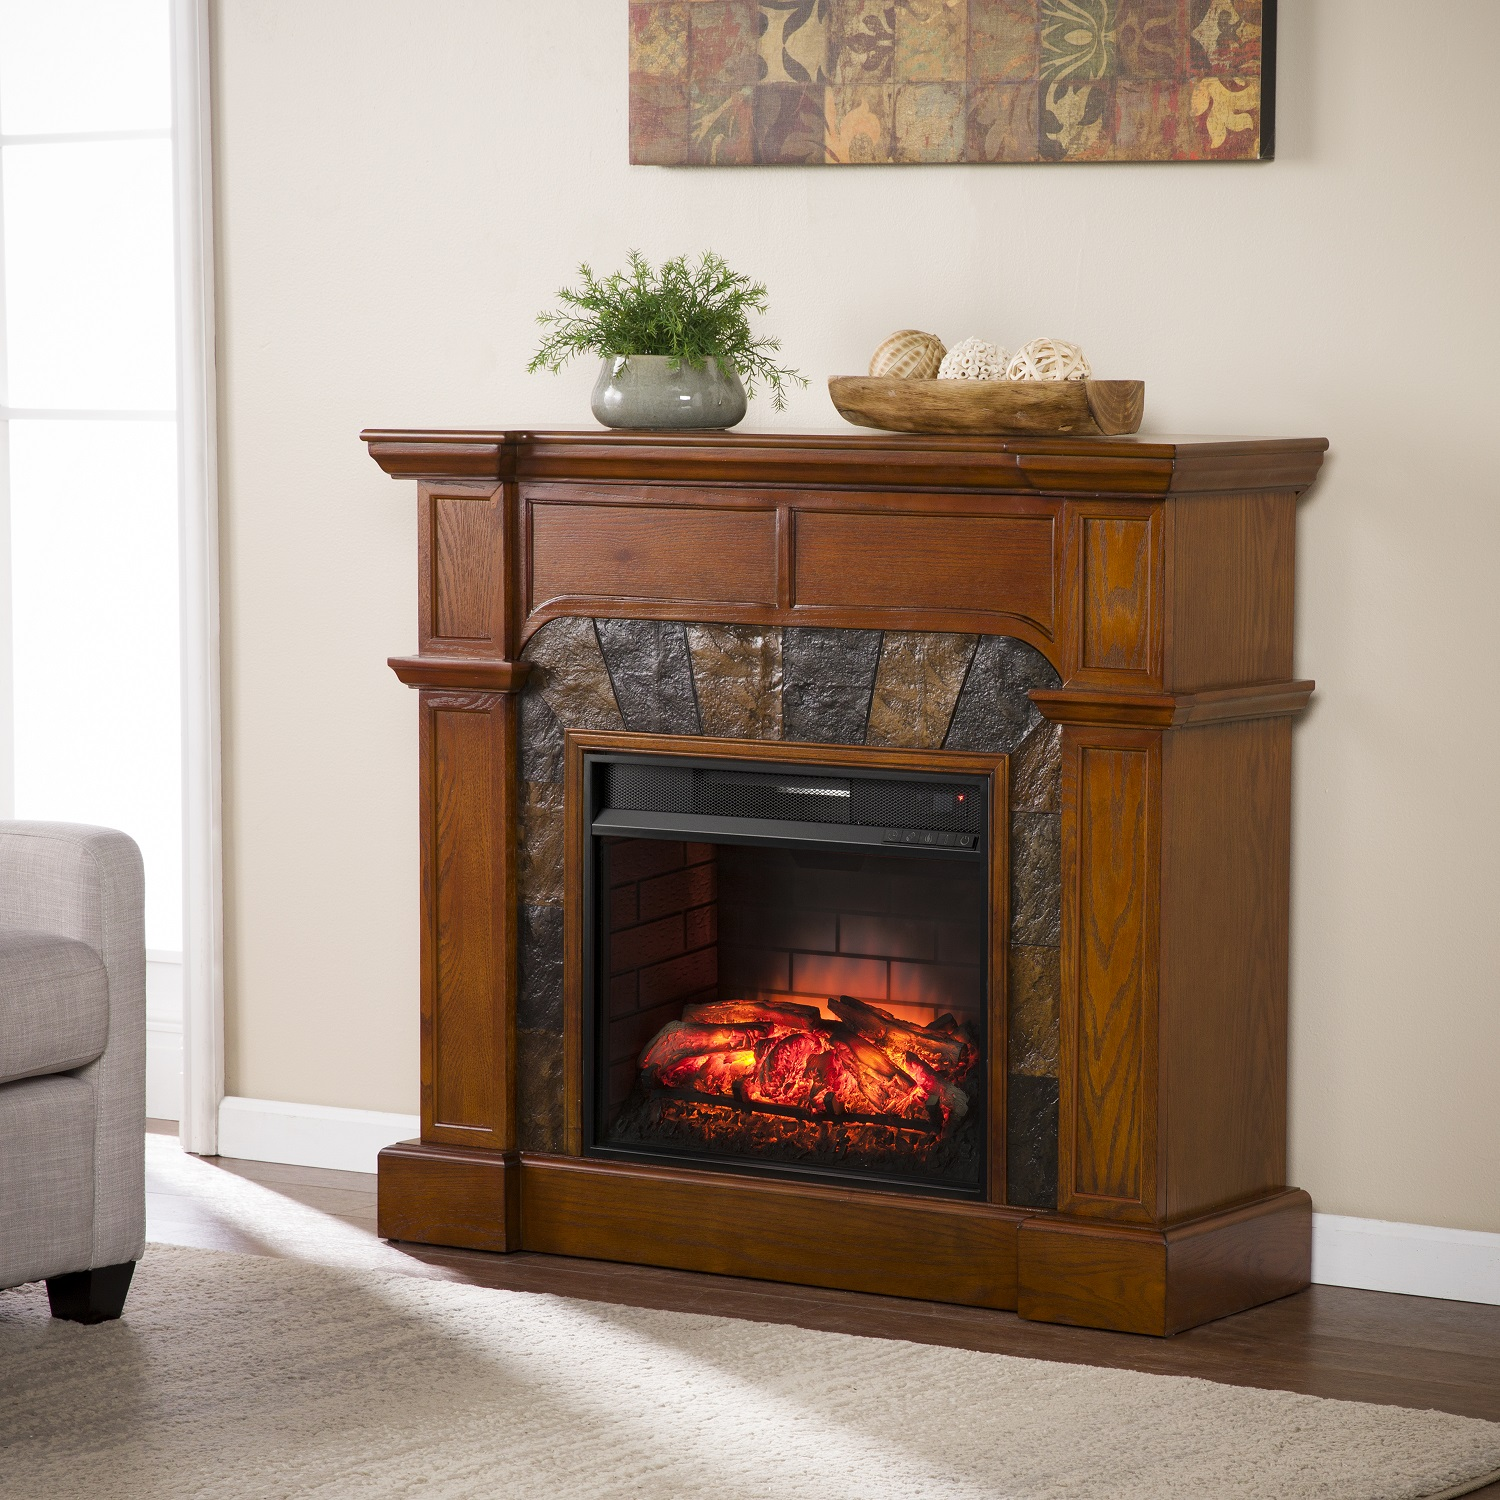 Bring your decor to life with this charming infrared electric fireplace. Linear woodwork forms a clean silhouette